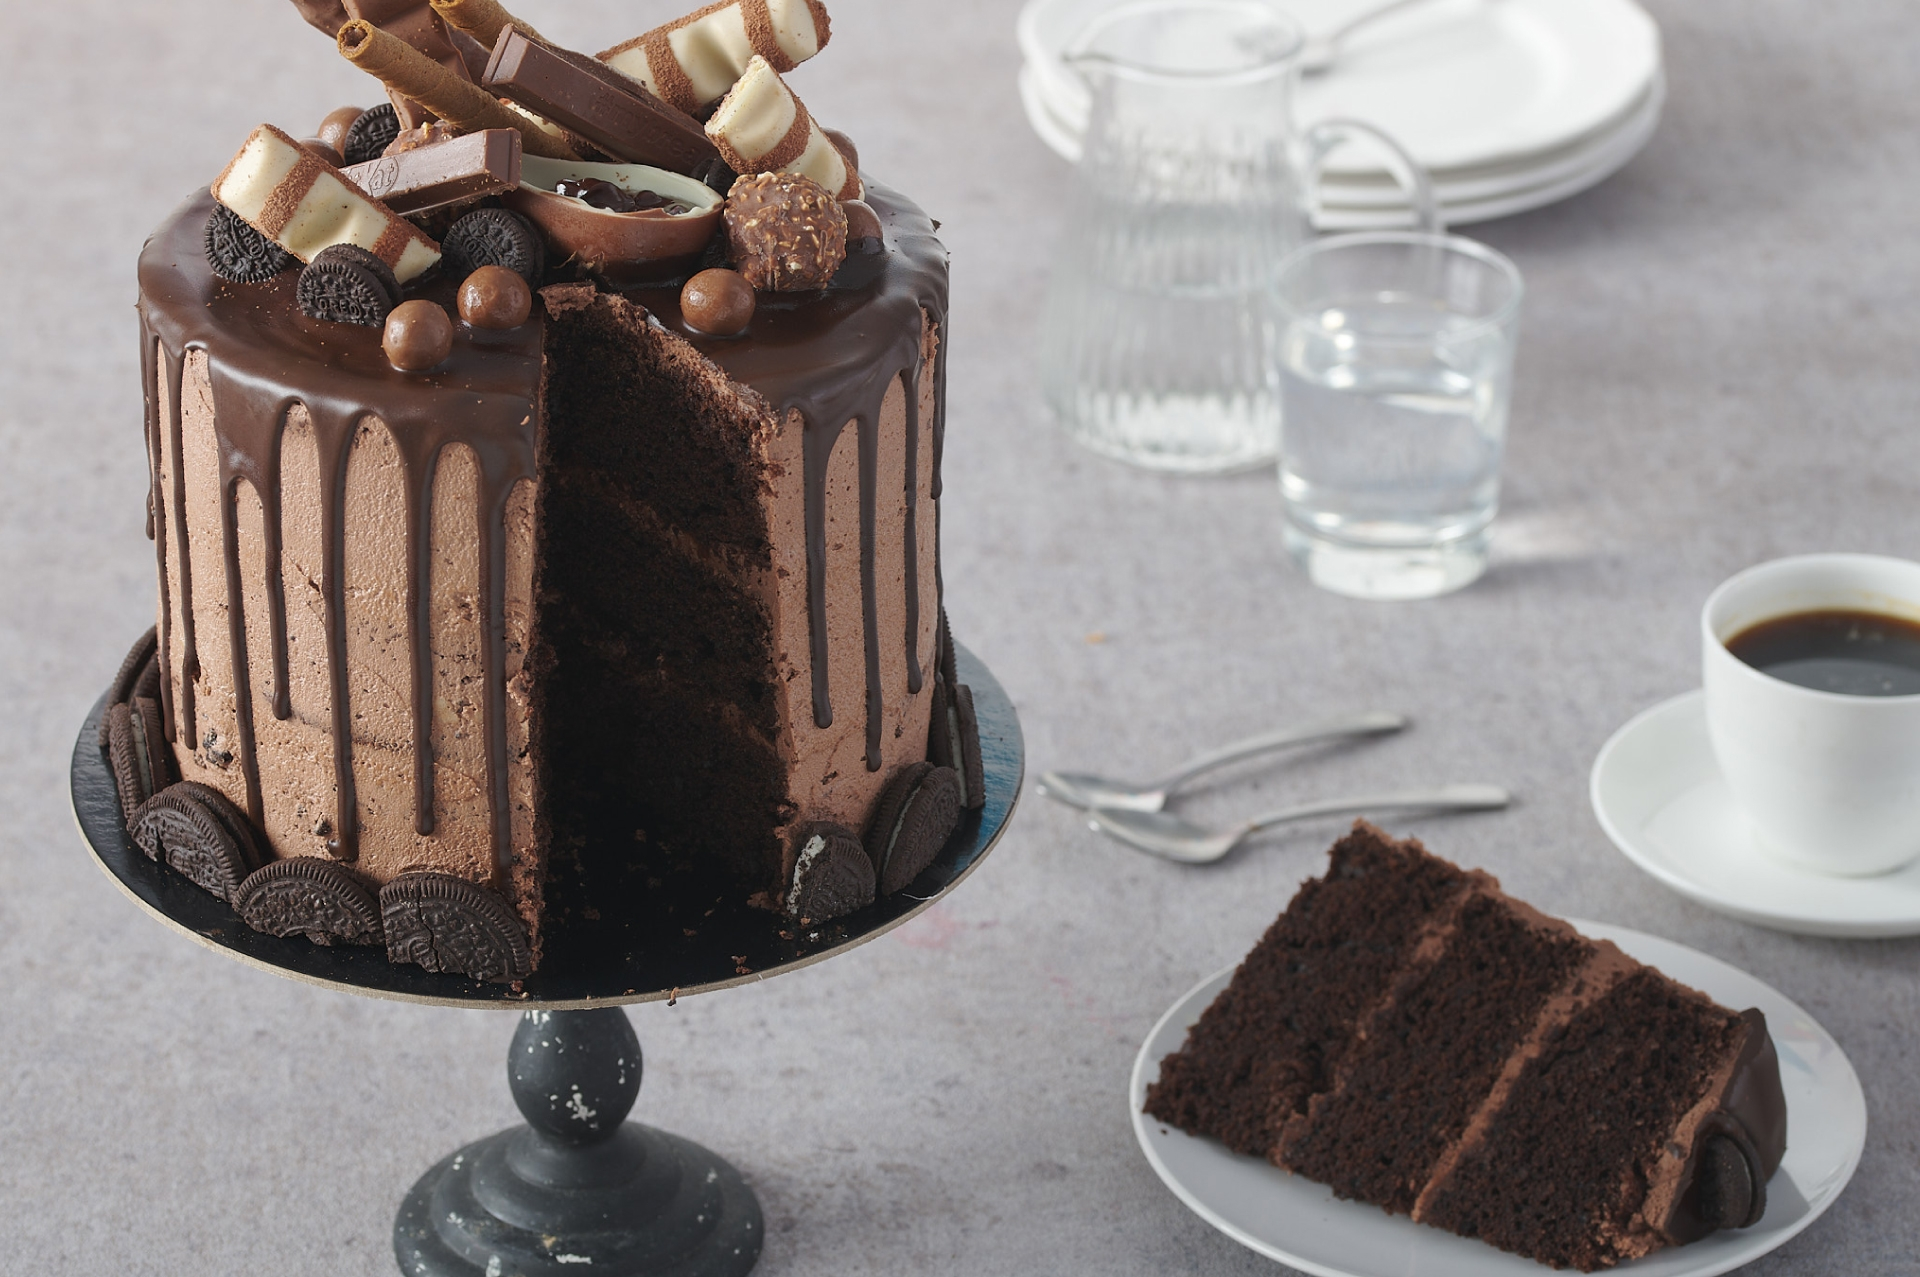 Chocolate & Cookies Cake